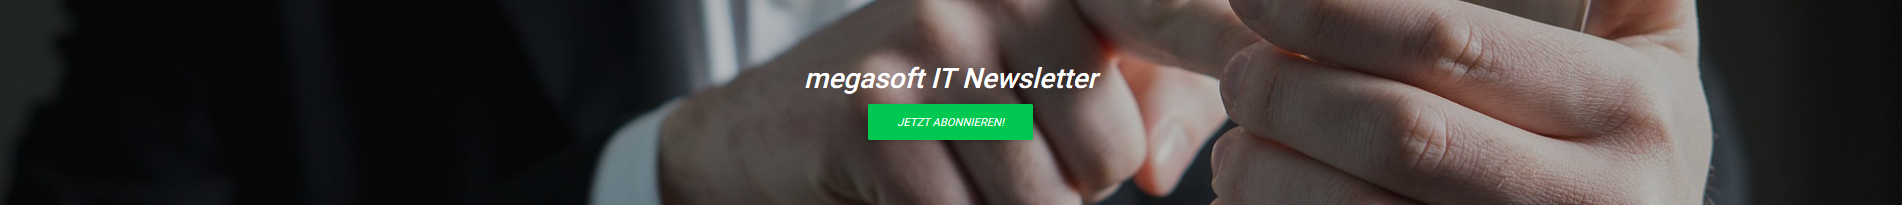 megasoft newsletter